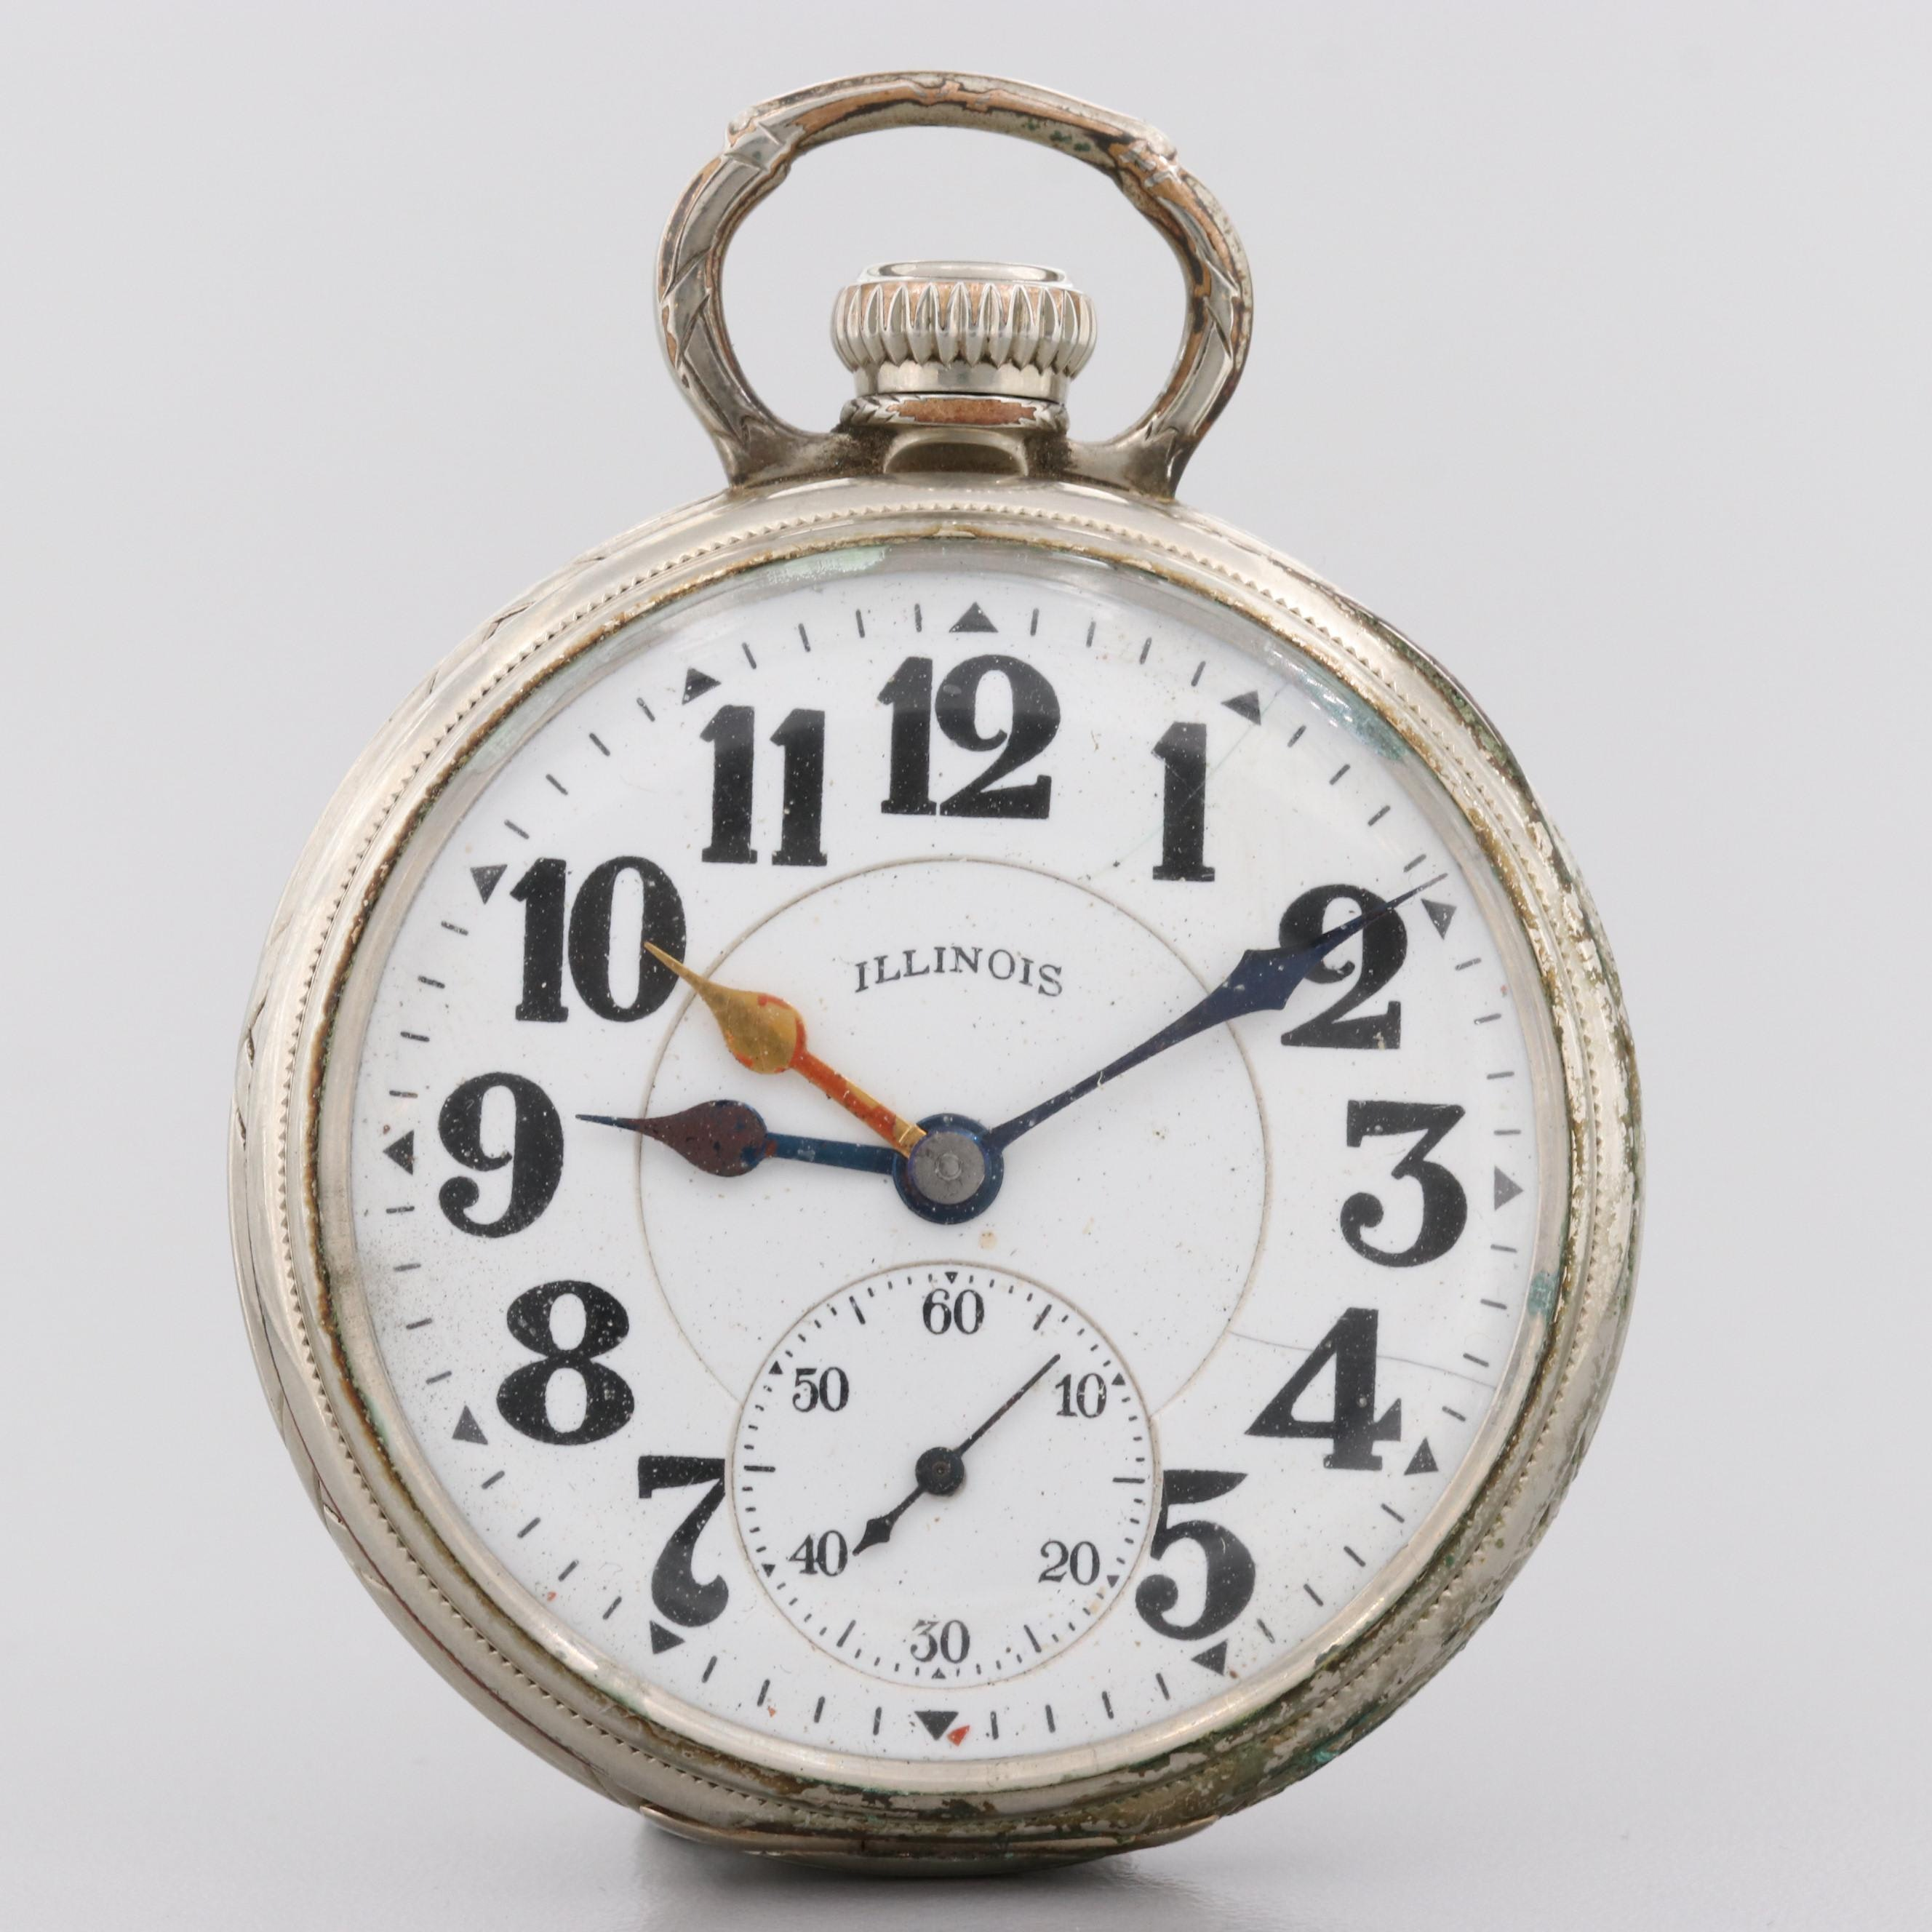 Illinois Railroad Grade Gold Filled Open Face, Dual Time Zone Pocket Watch,1925